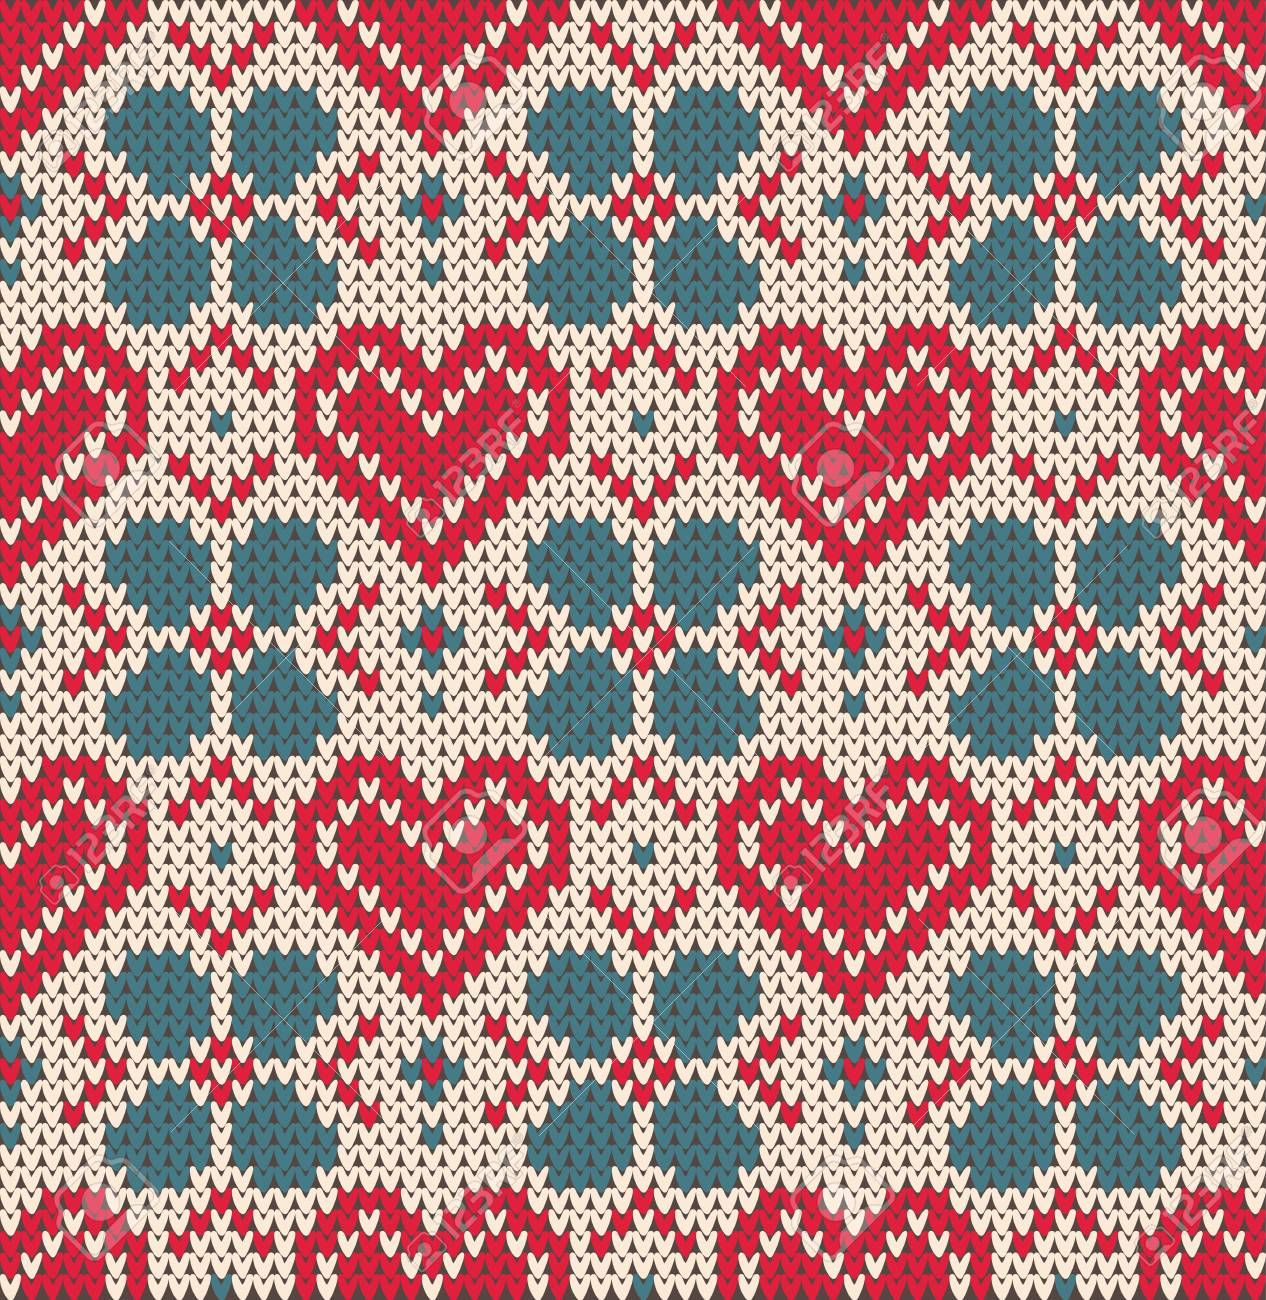 ddde4f05946362 Wool knitted texture. Vector Illustration. Seamless pattern on the theme of  Valentine s Day with an image of the Norwegian patterns and